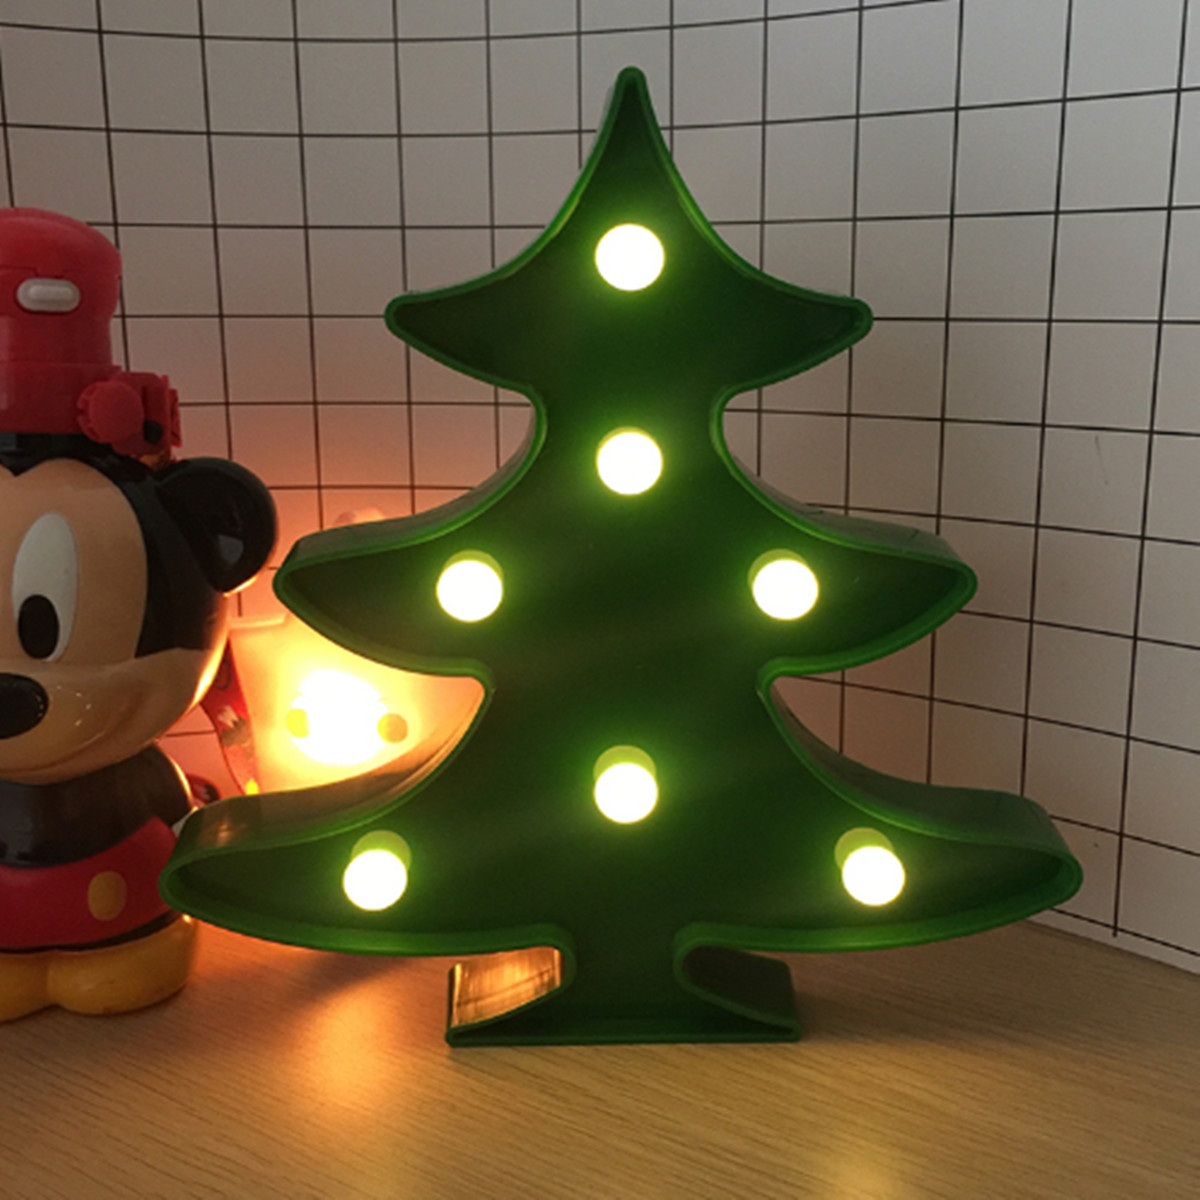 LED Night Lights Lamp Bright Home Bedroom Decoration Xmas ...